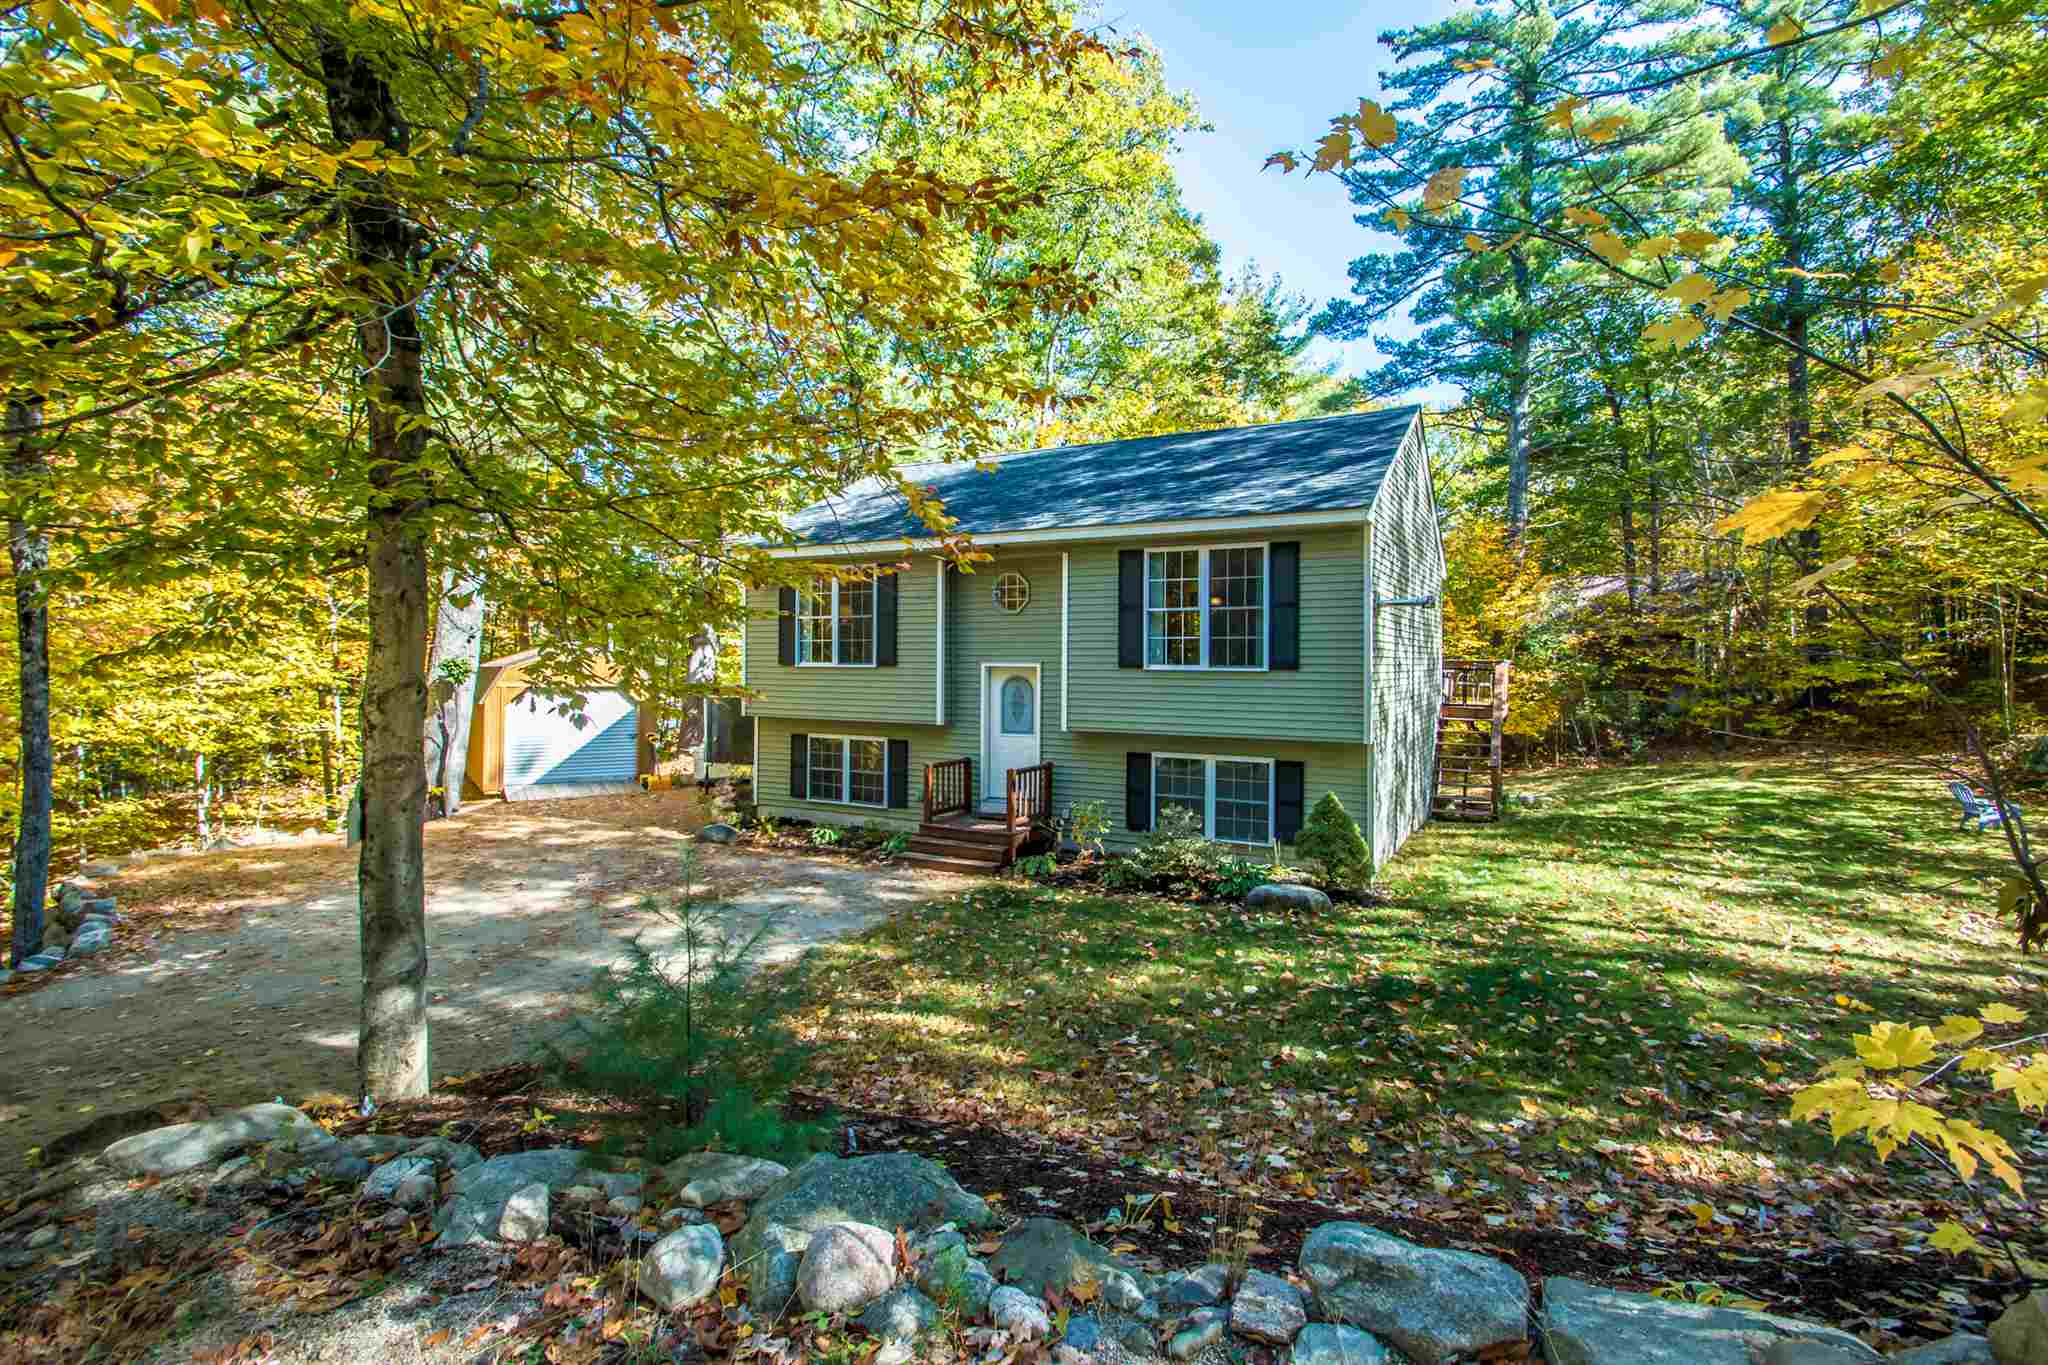 CONWAY NHHomes for sale